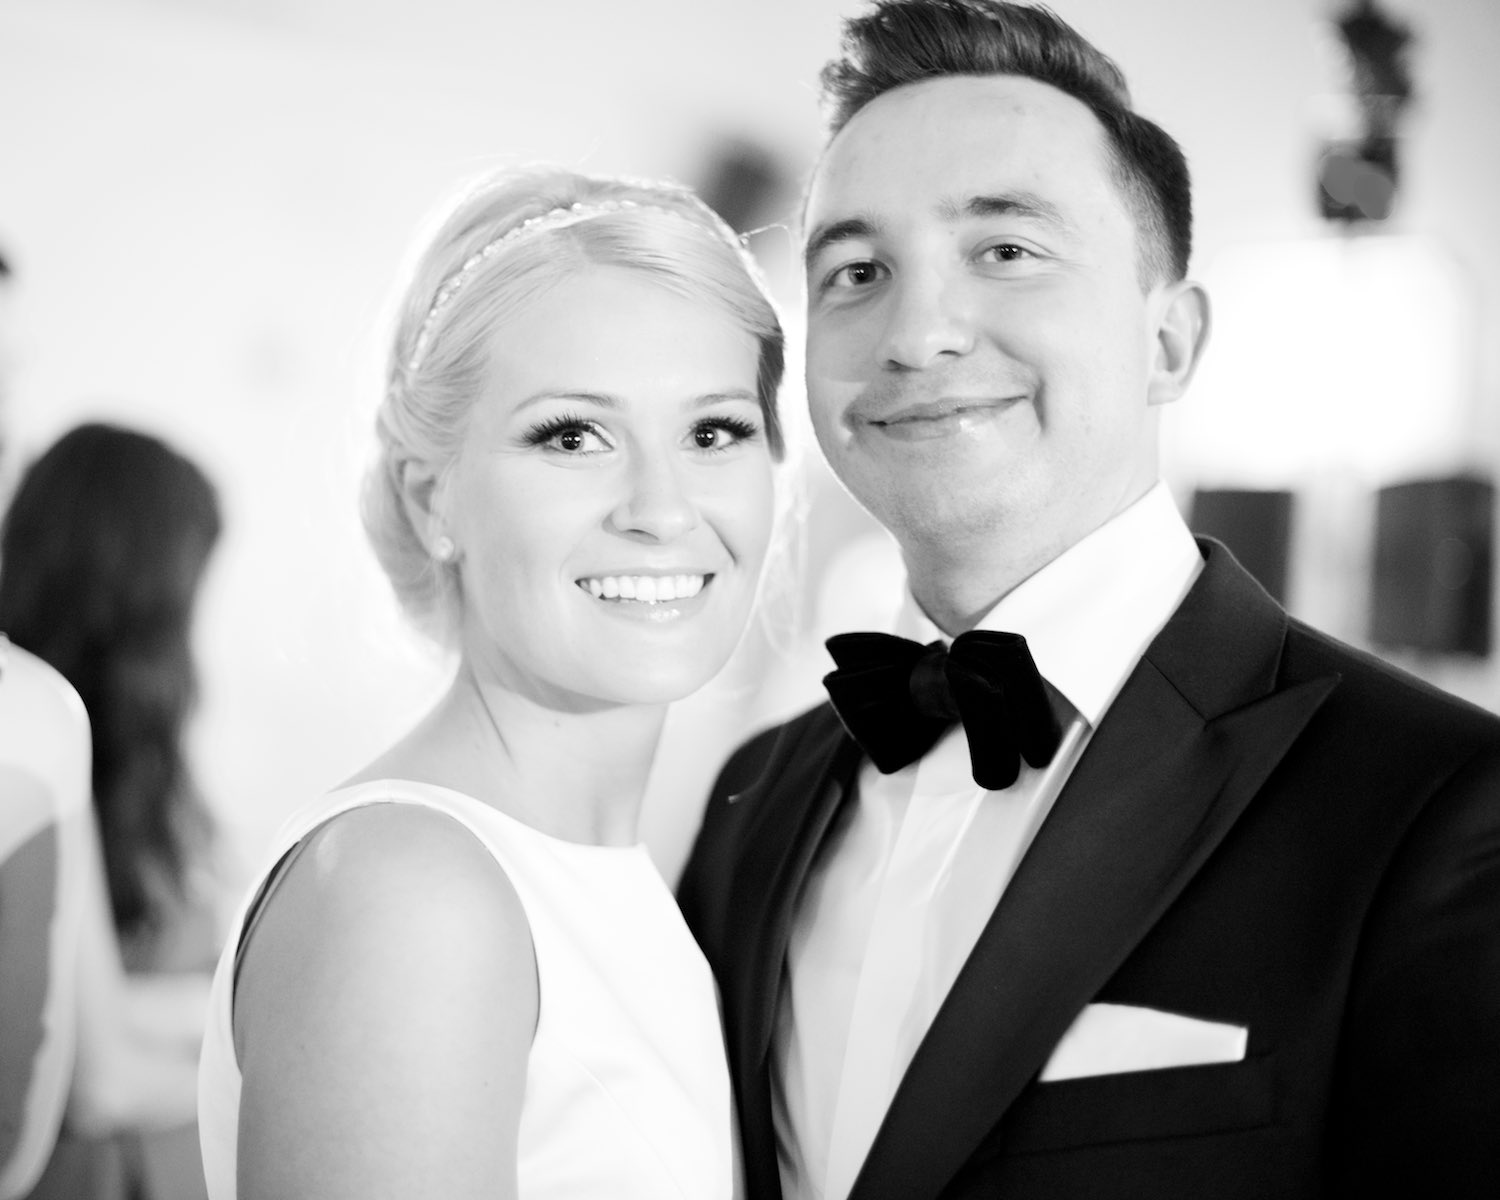 polish-wedding-michal-pfeil-32.jpg